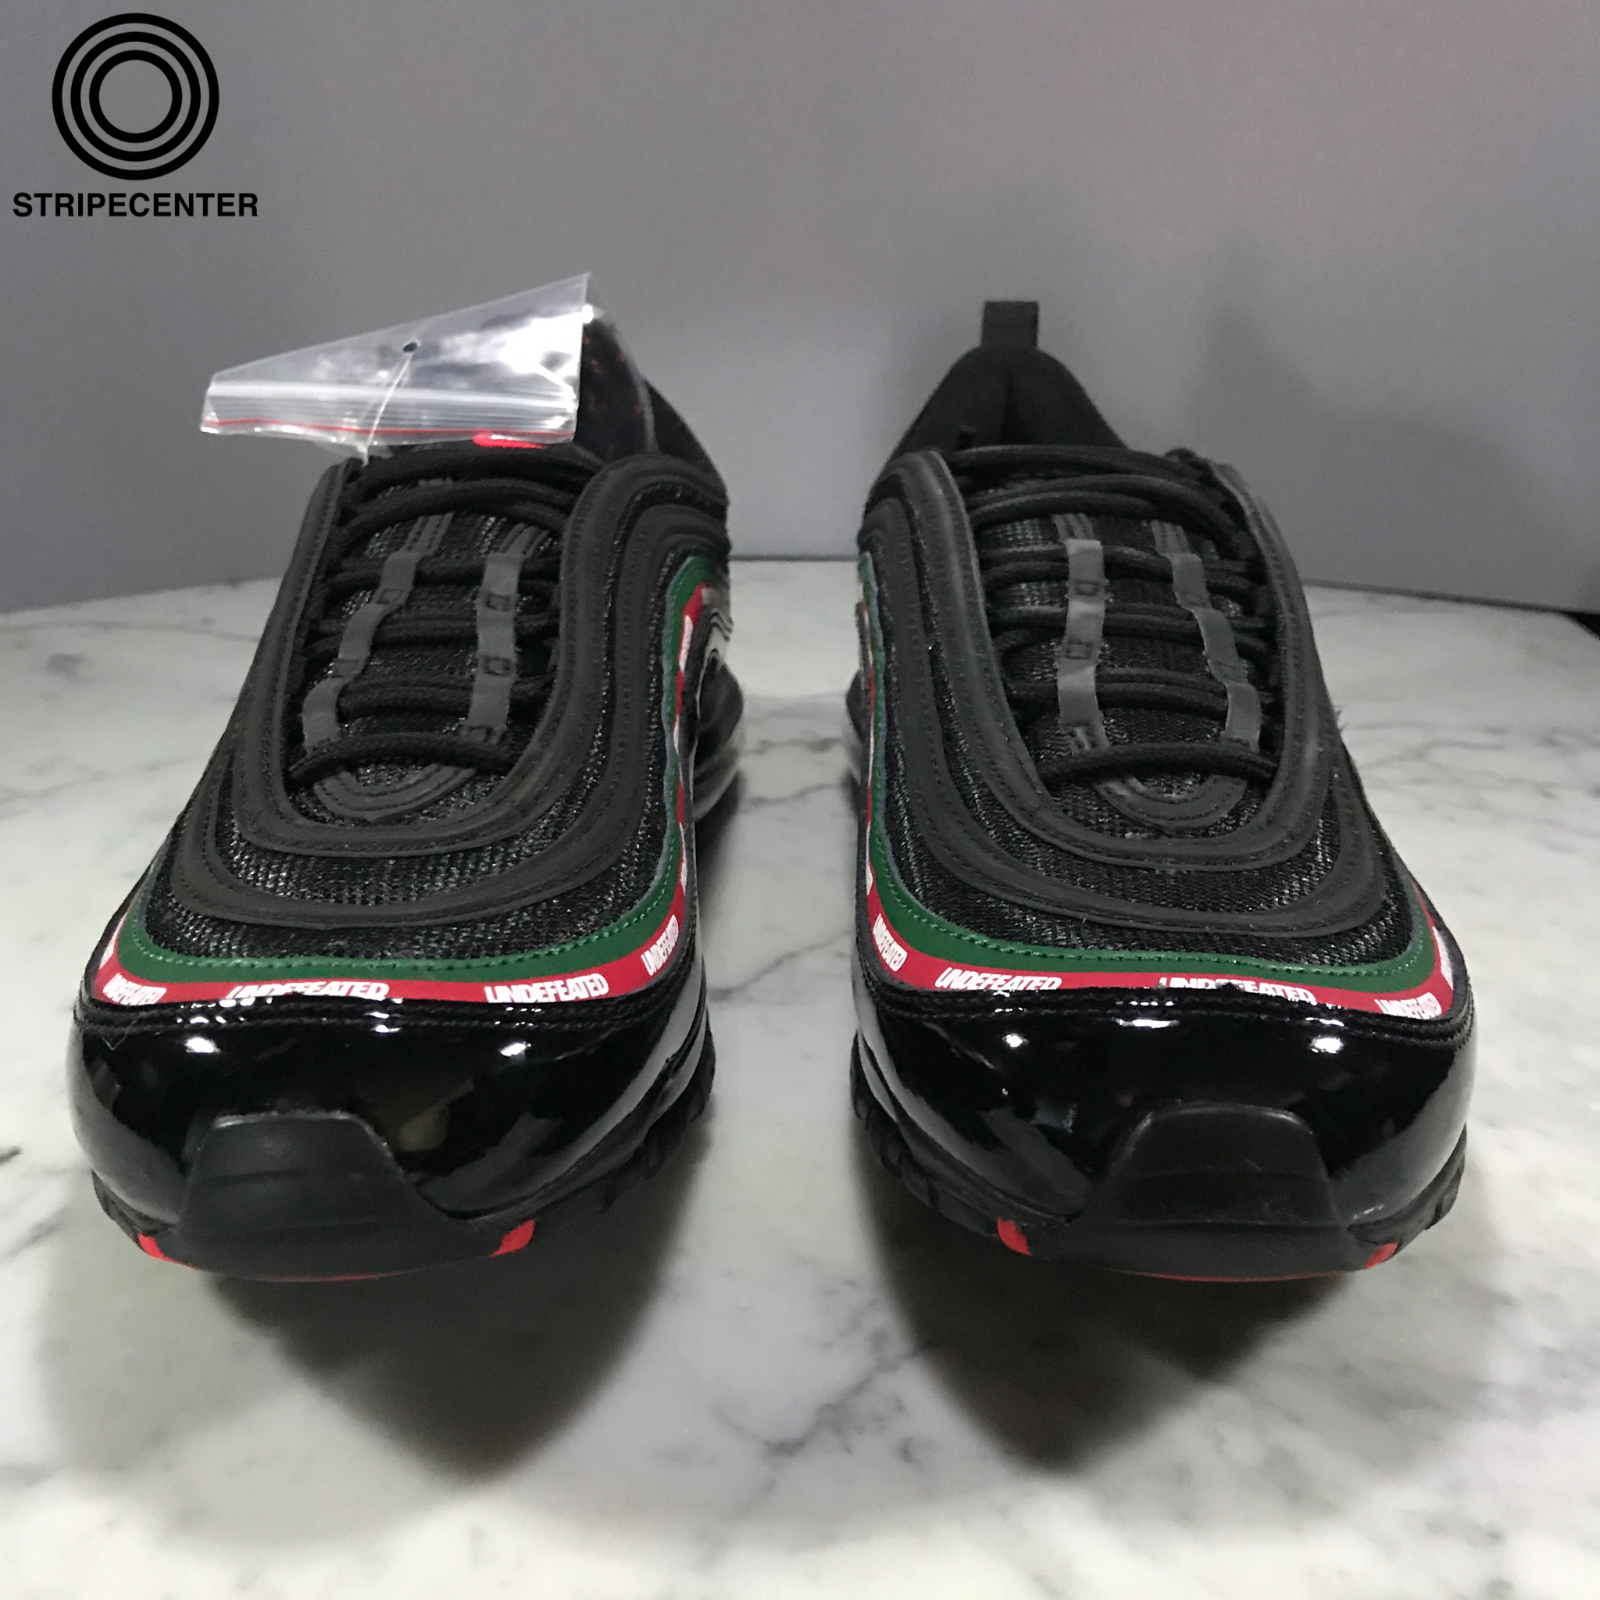 NIKE NIKE NIKE AIR MAX 97 'UNDFTD' - BLACK GORGE GREEN-WHITE-SPEED RED - AJ1986-001 9b24d2